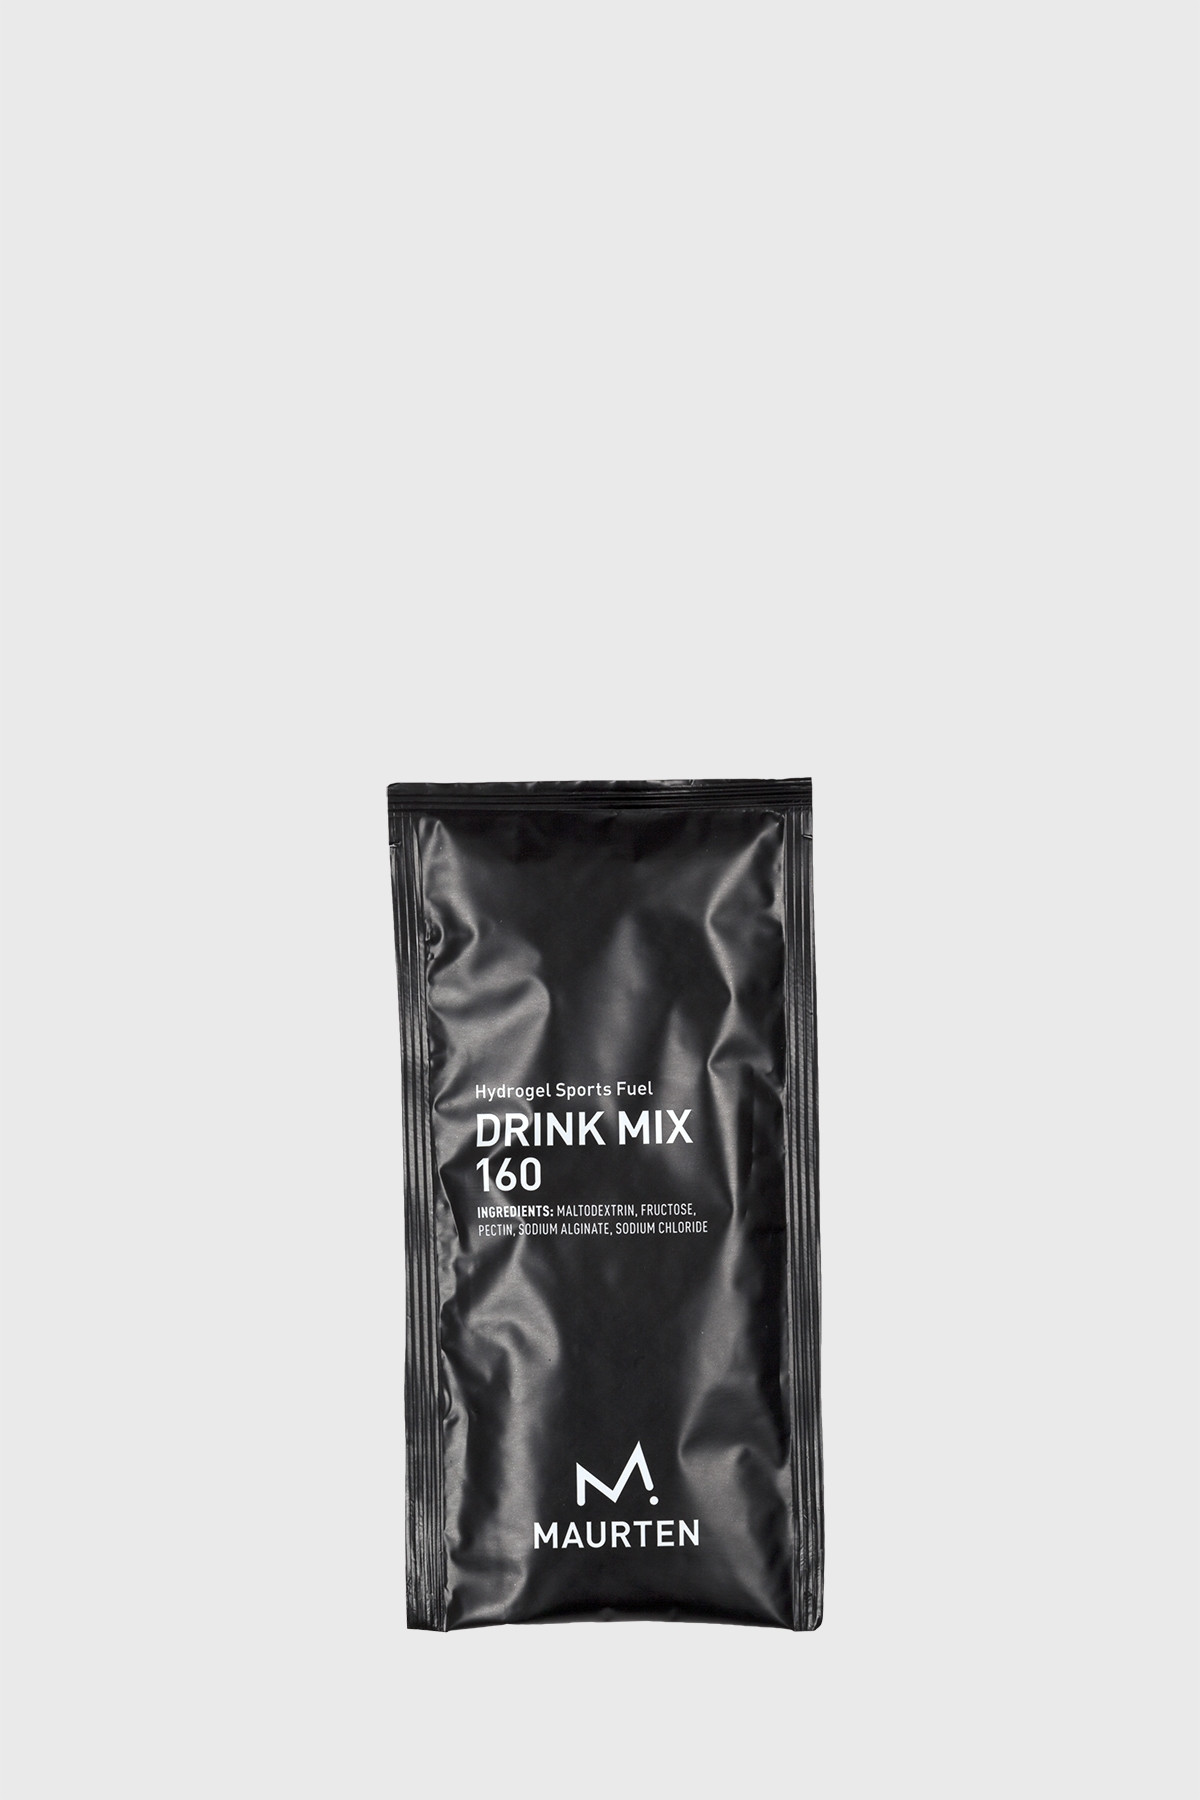 Maurten - Drink Mix 160 - Box